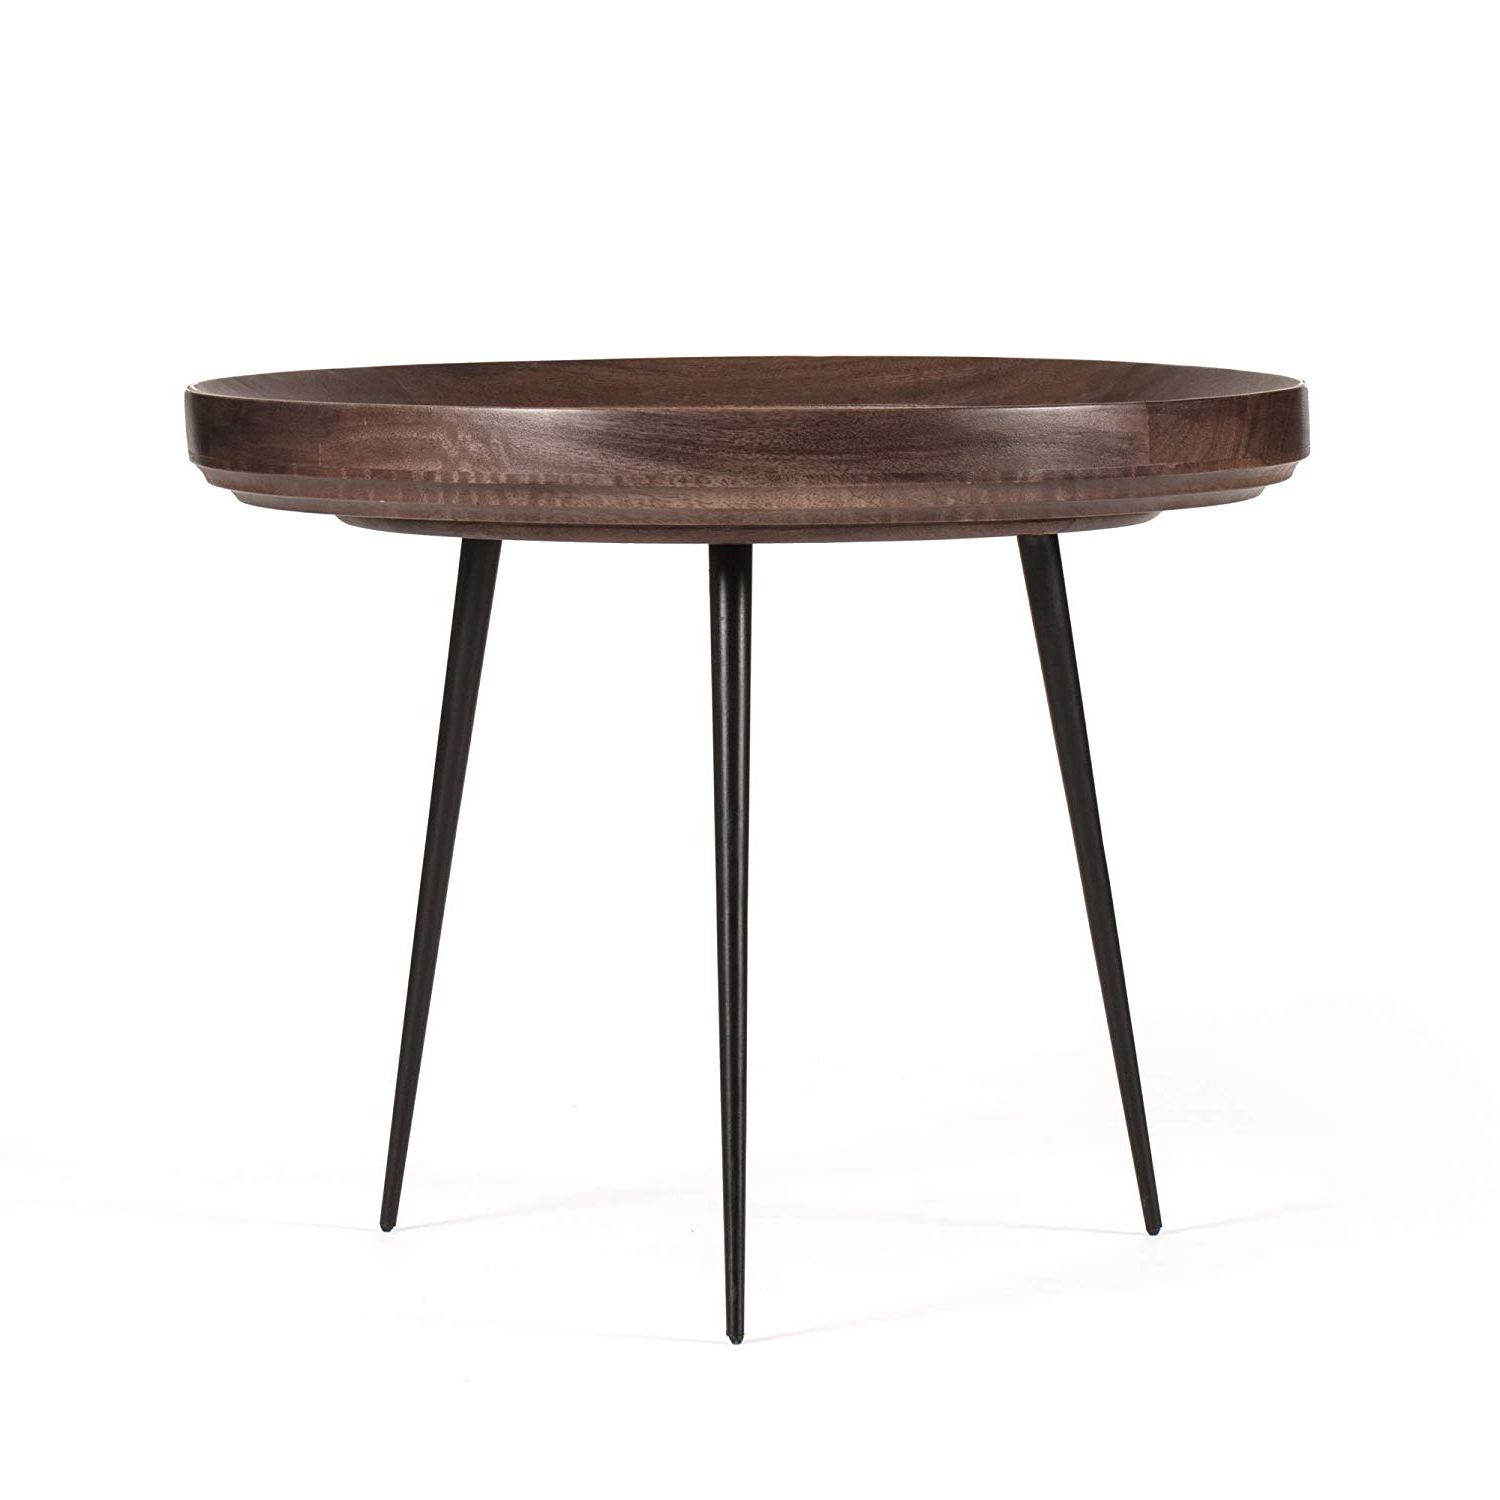 Elegance Small Round Dining Tables for Widely used Amazon: Cardona Round Side Table